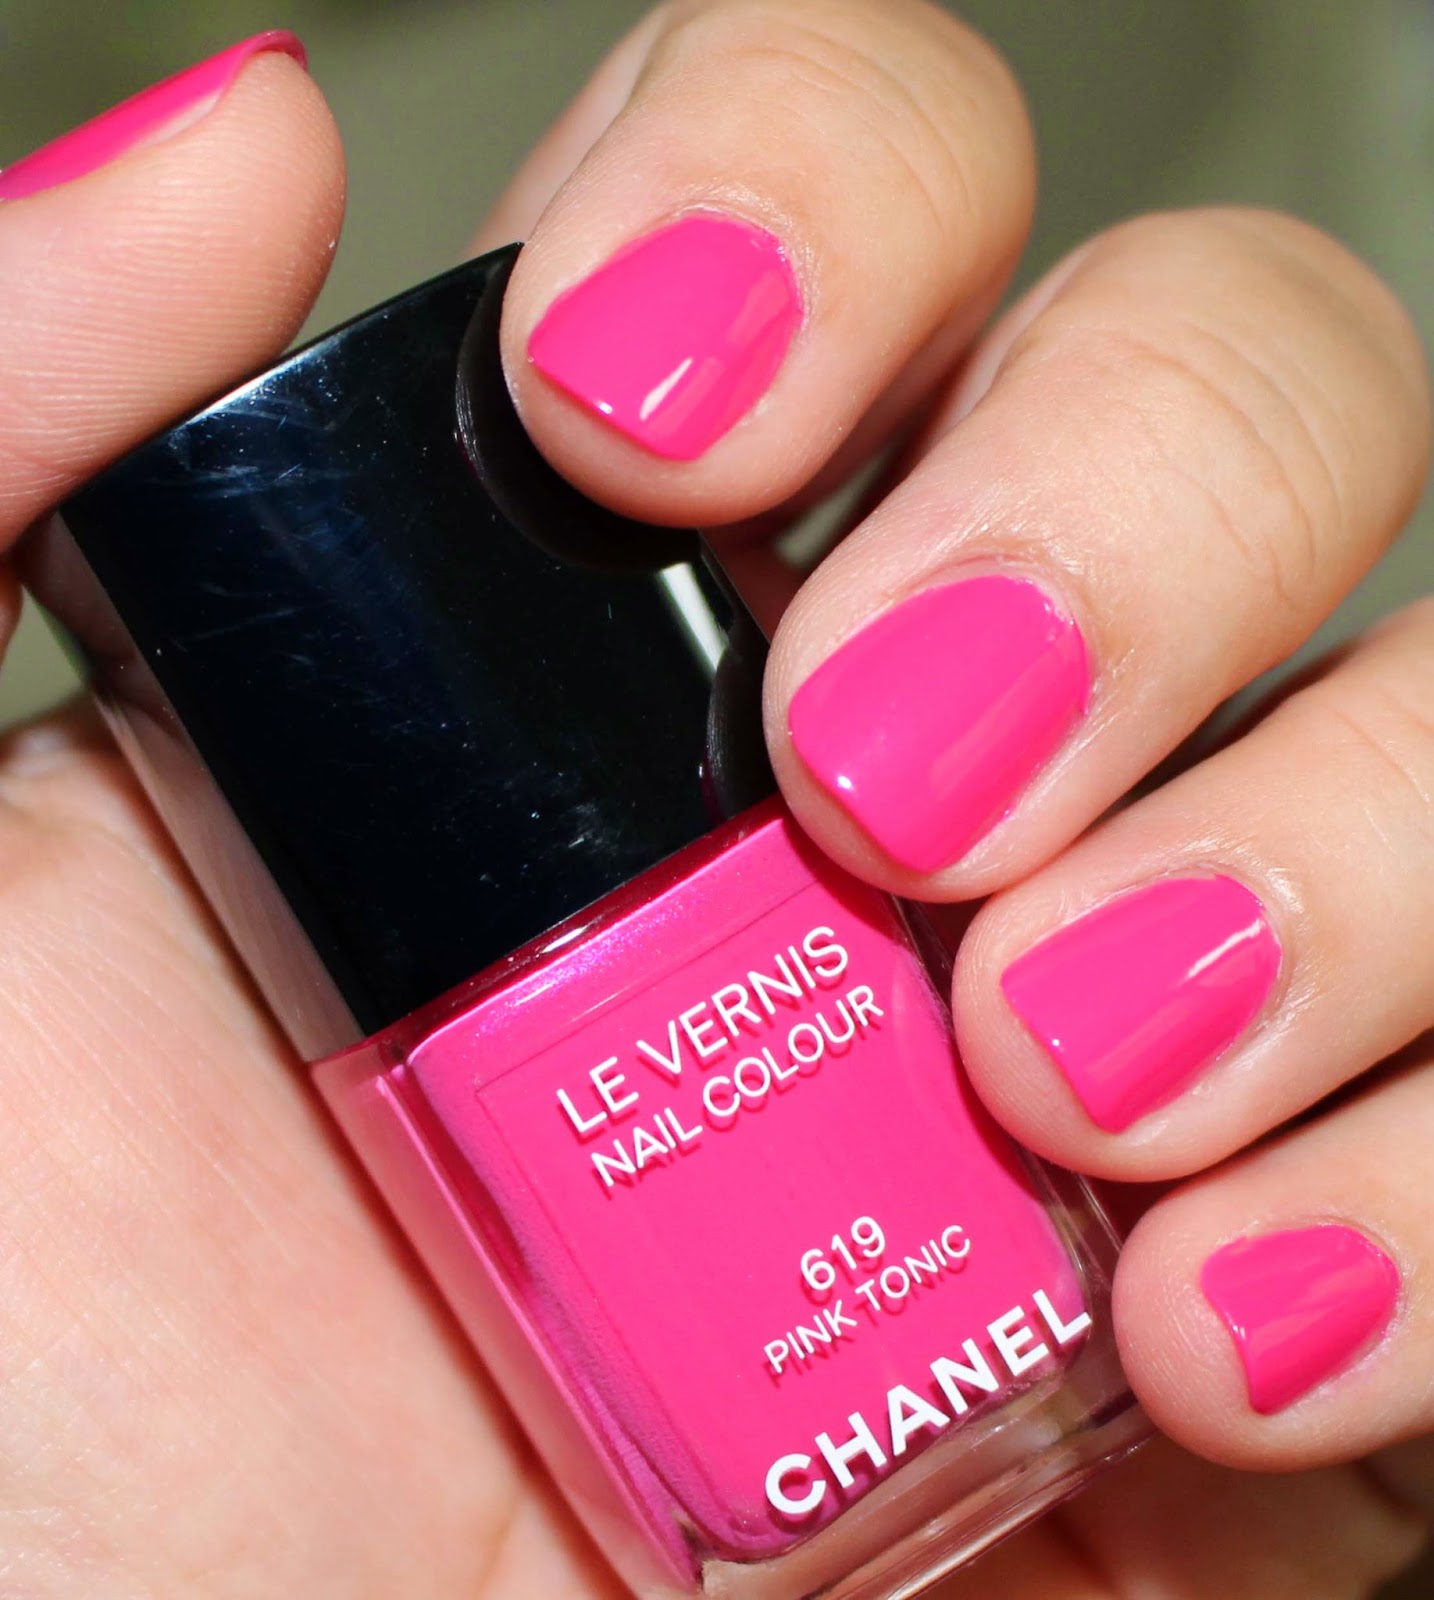 Pondering Beauty: Chanel Le Vernis Nail Colour in 619 Pink Tonic